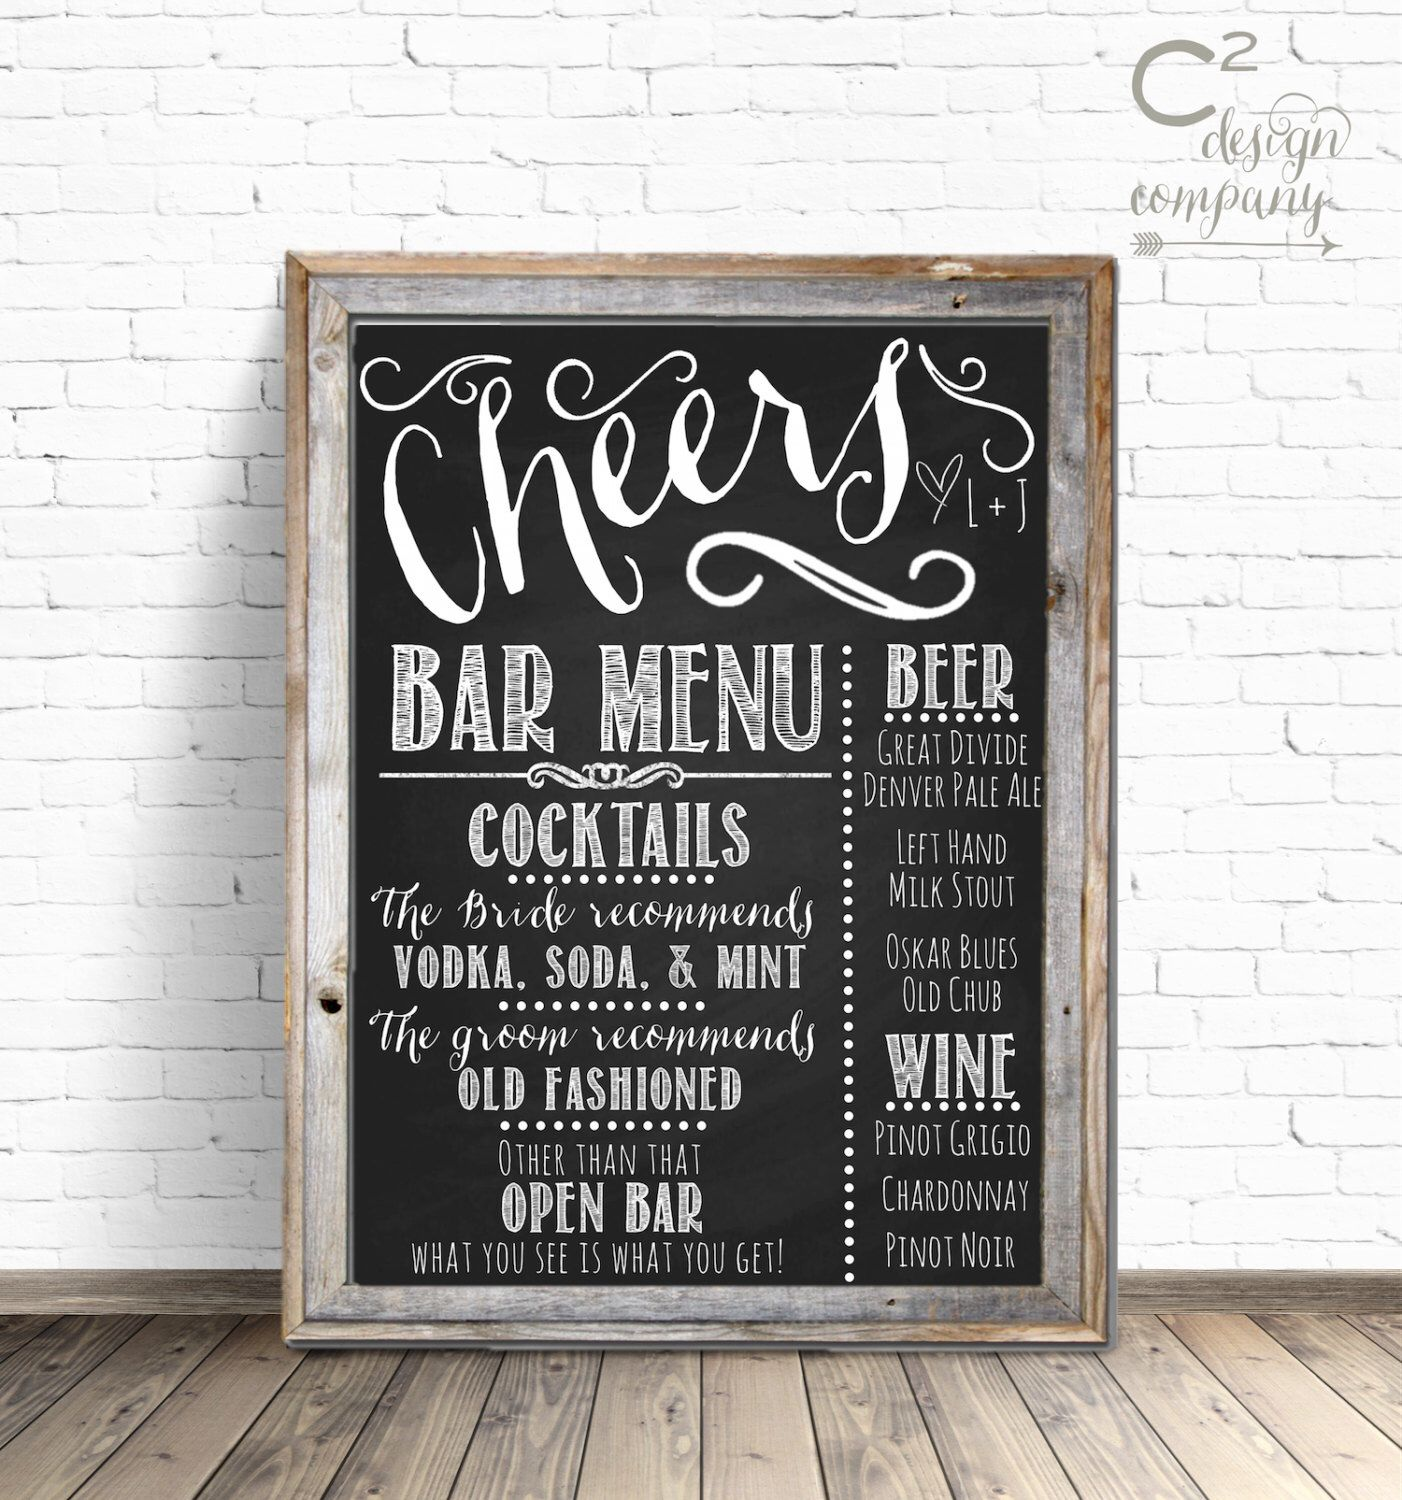 cheers chalkboard wedding bar menu sign in 2018 | vault chalk